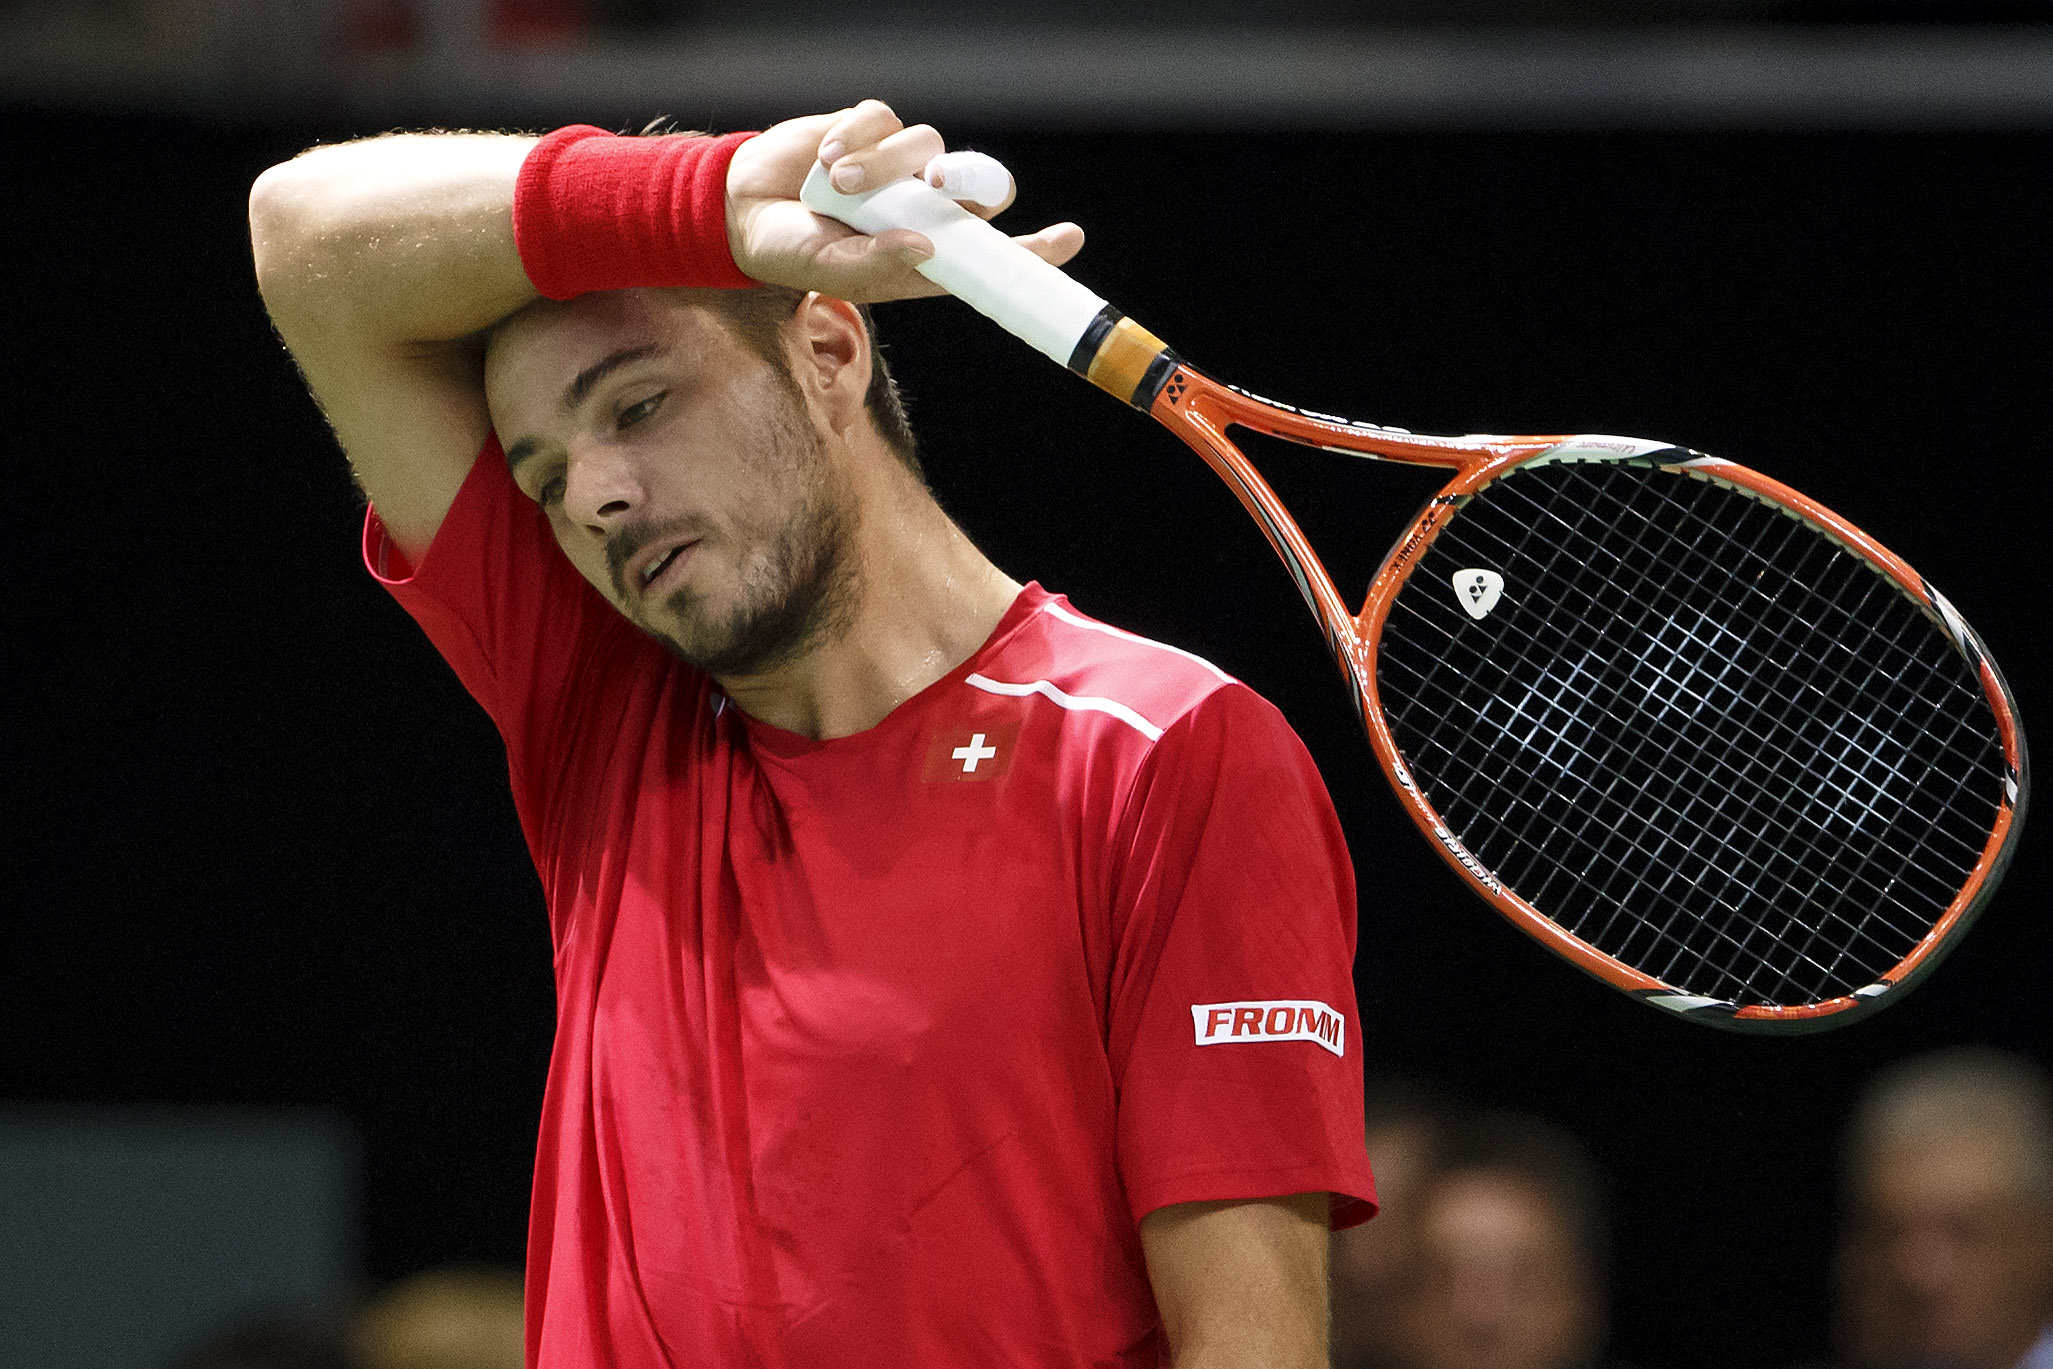 Stan Wawrinka of Switzerland reacts after losing a point against Thiemo De Bakker of the Netherlands during the first single match of the tennis Davis Cup World Group play-off round between Switzerland and the Netherlands in Geneva, Switzerland, Friday, S